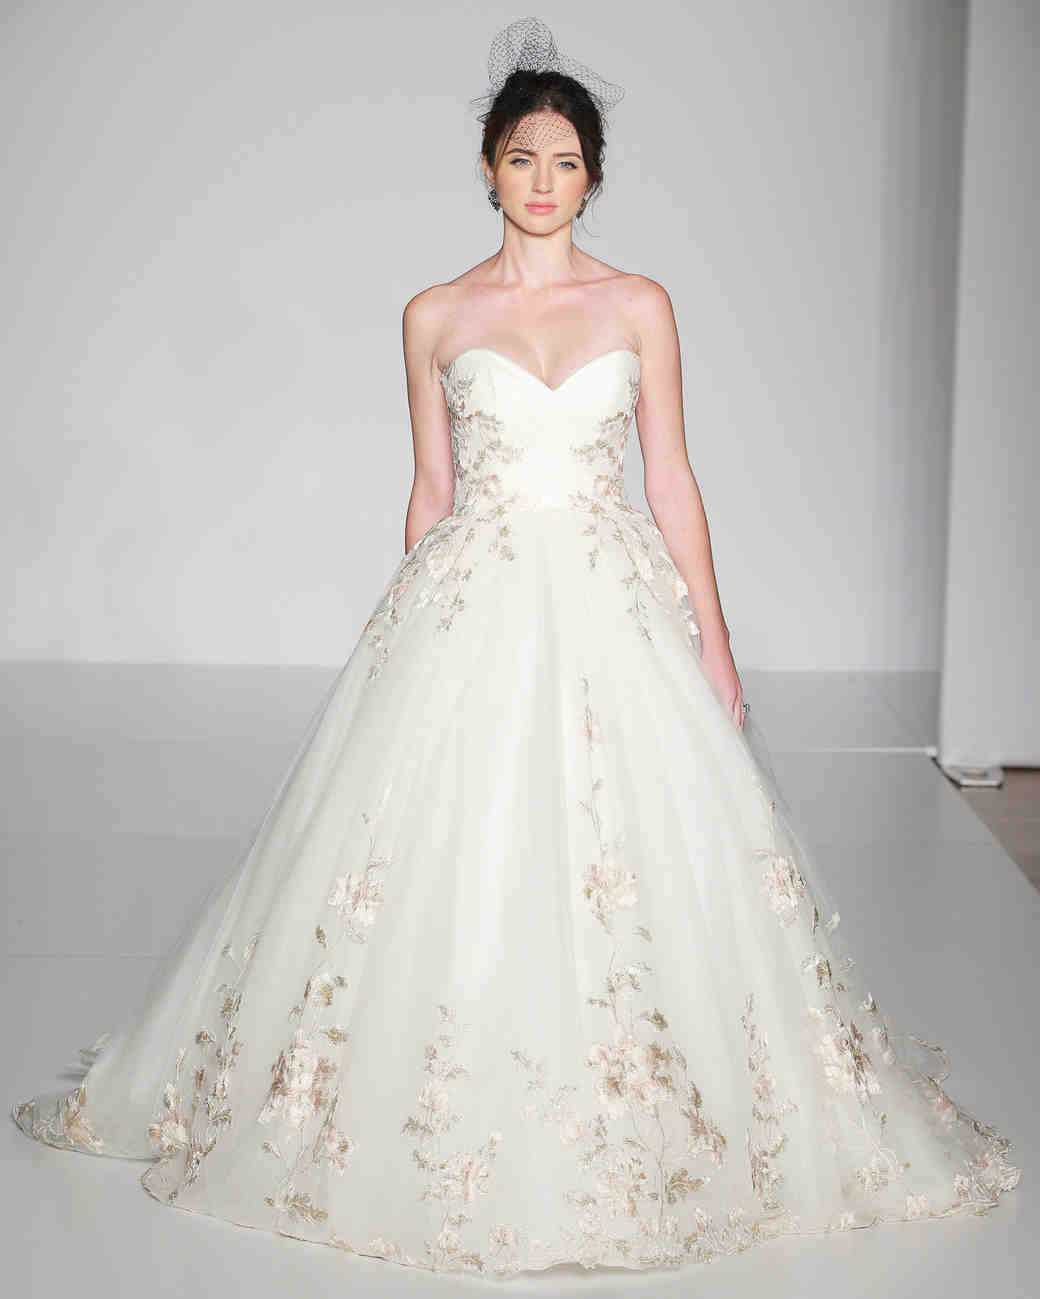 Wedding Dresess: Ultra-Romantic Floral Wedding Dresses